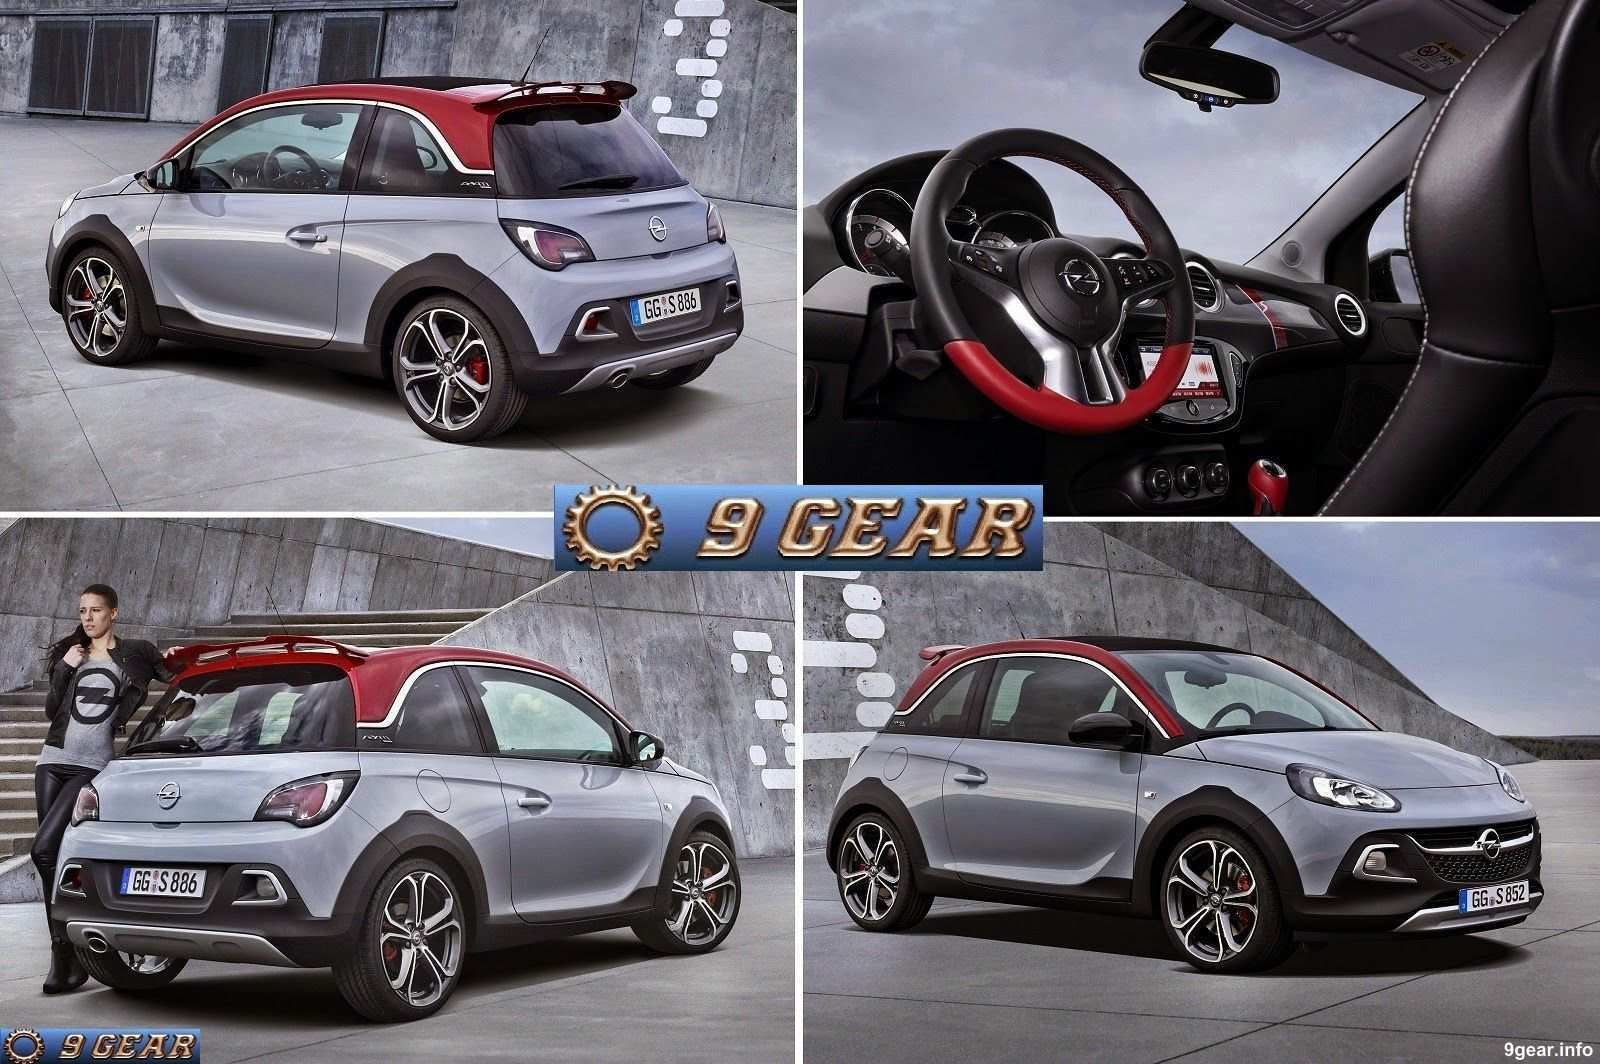 67 New 2020 Opel Adam Rocks Price And Review